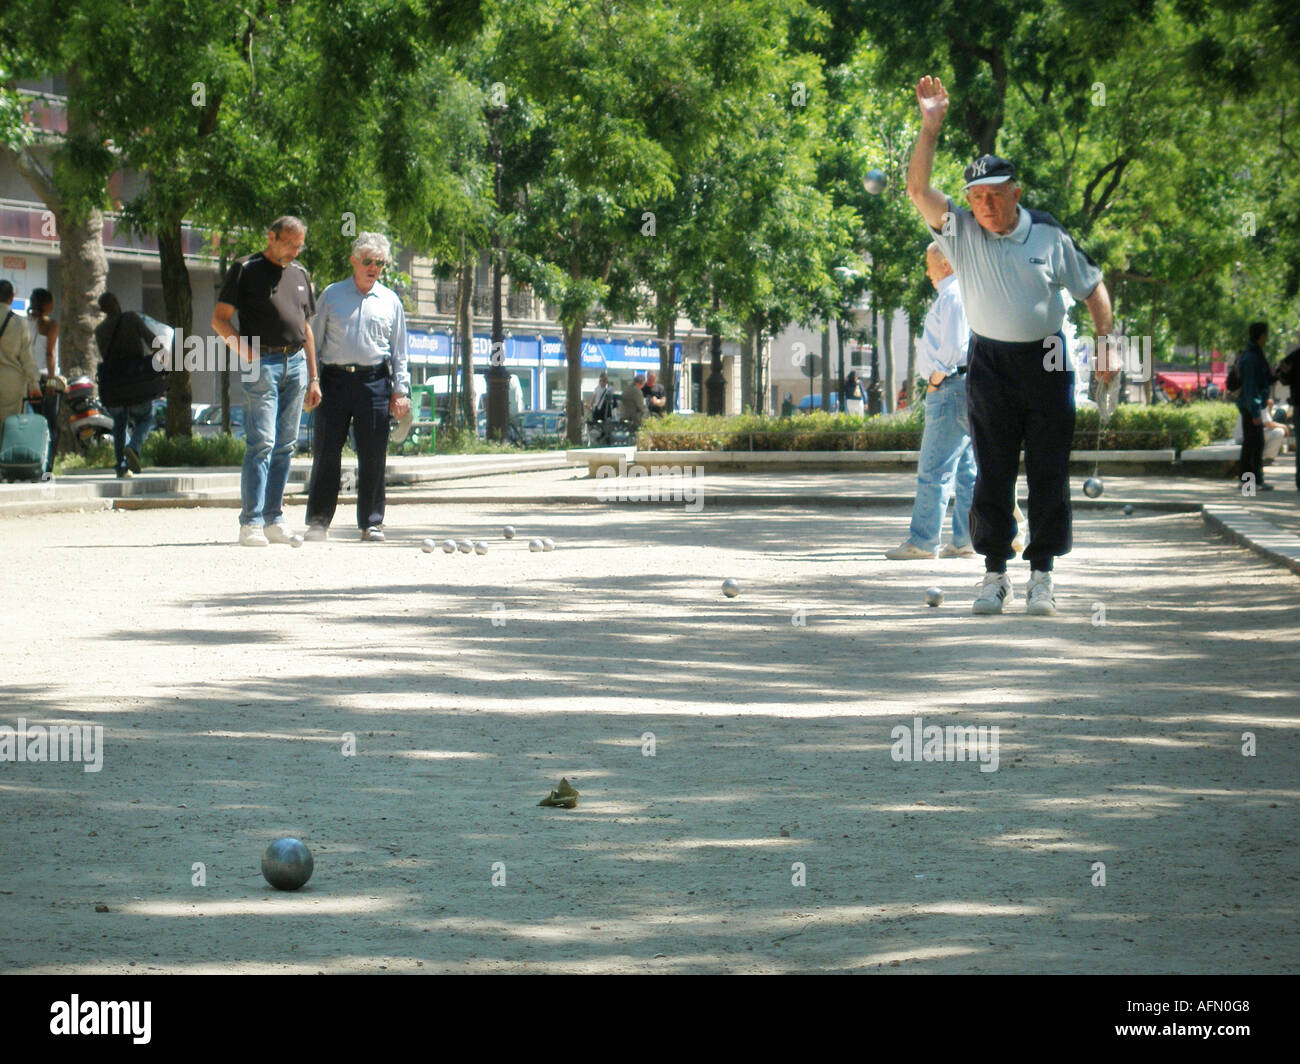 Group of middle aged men playing a game of Petanque in Parisian park Paris France Stock Photo